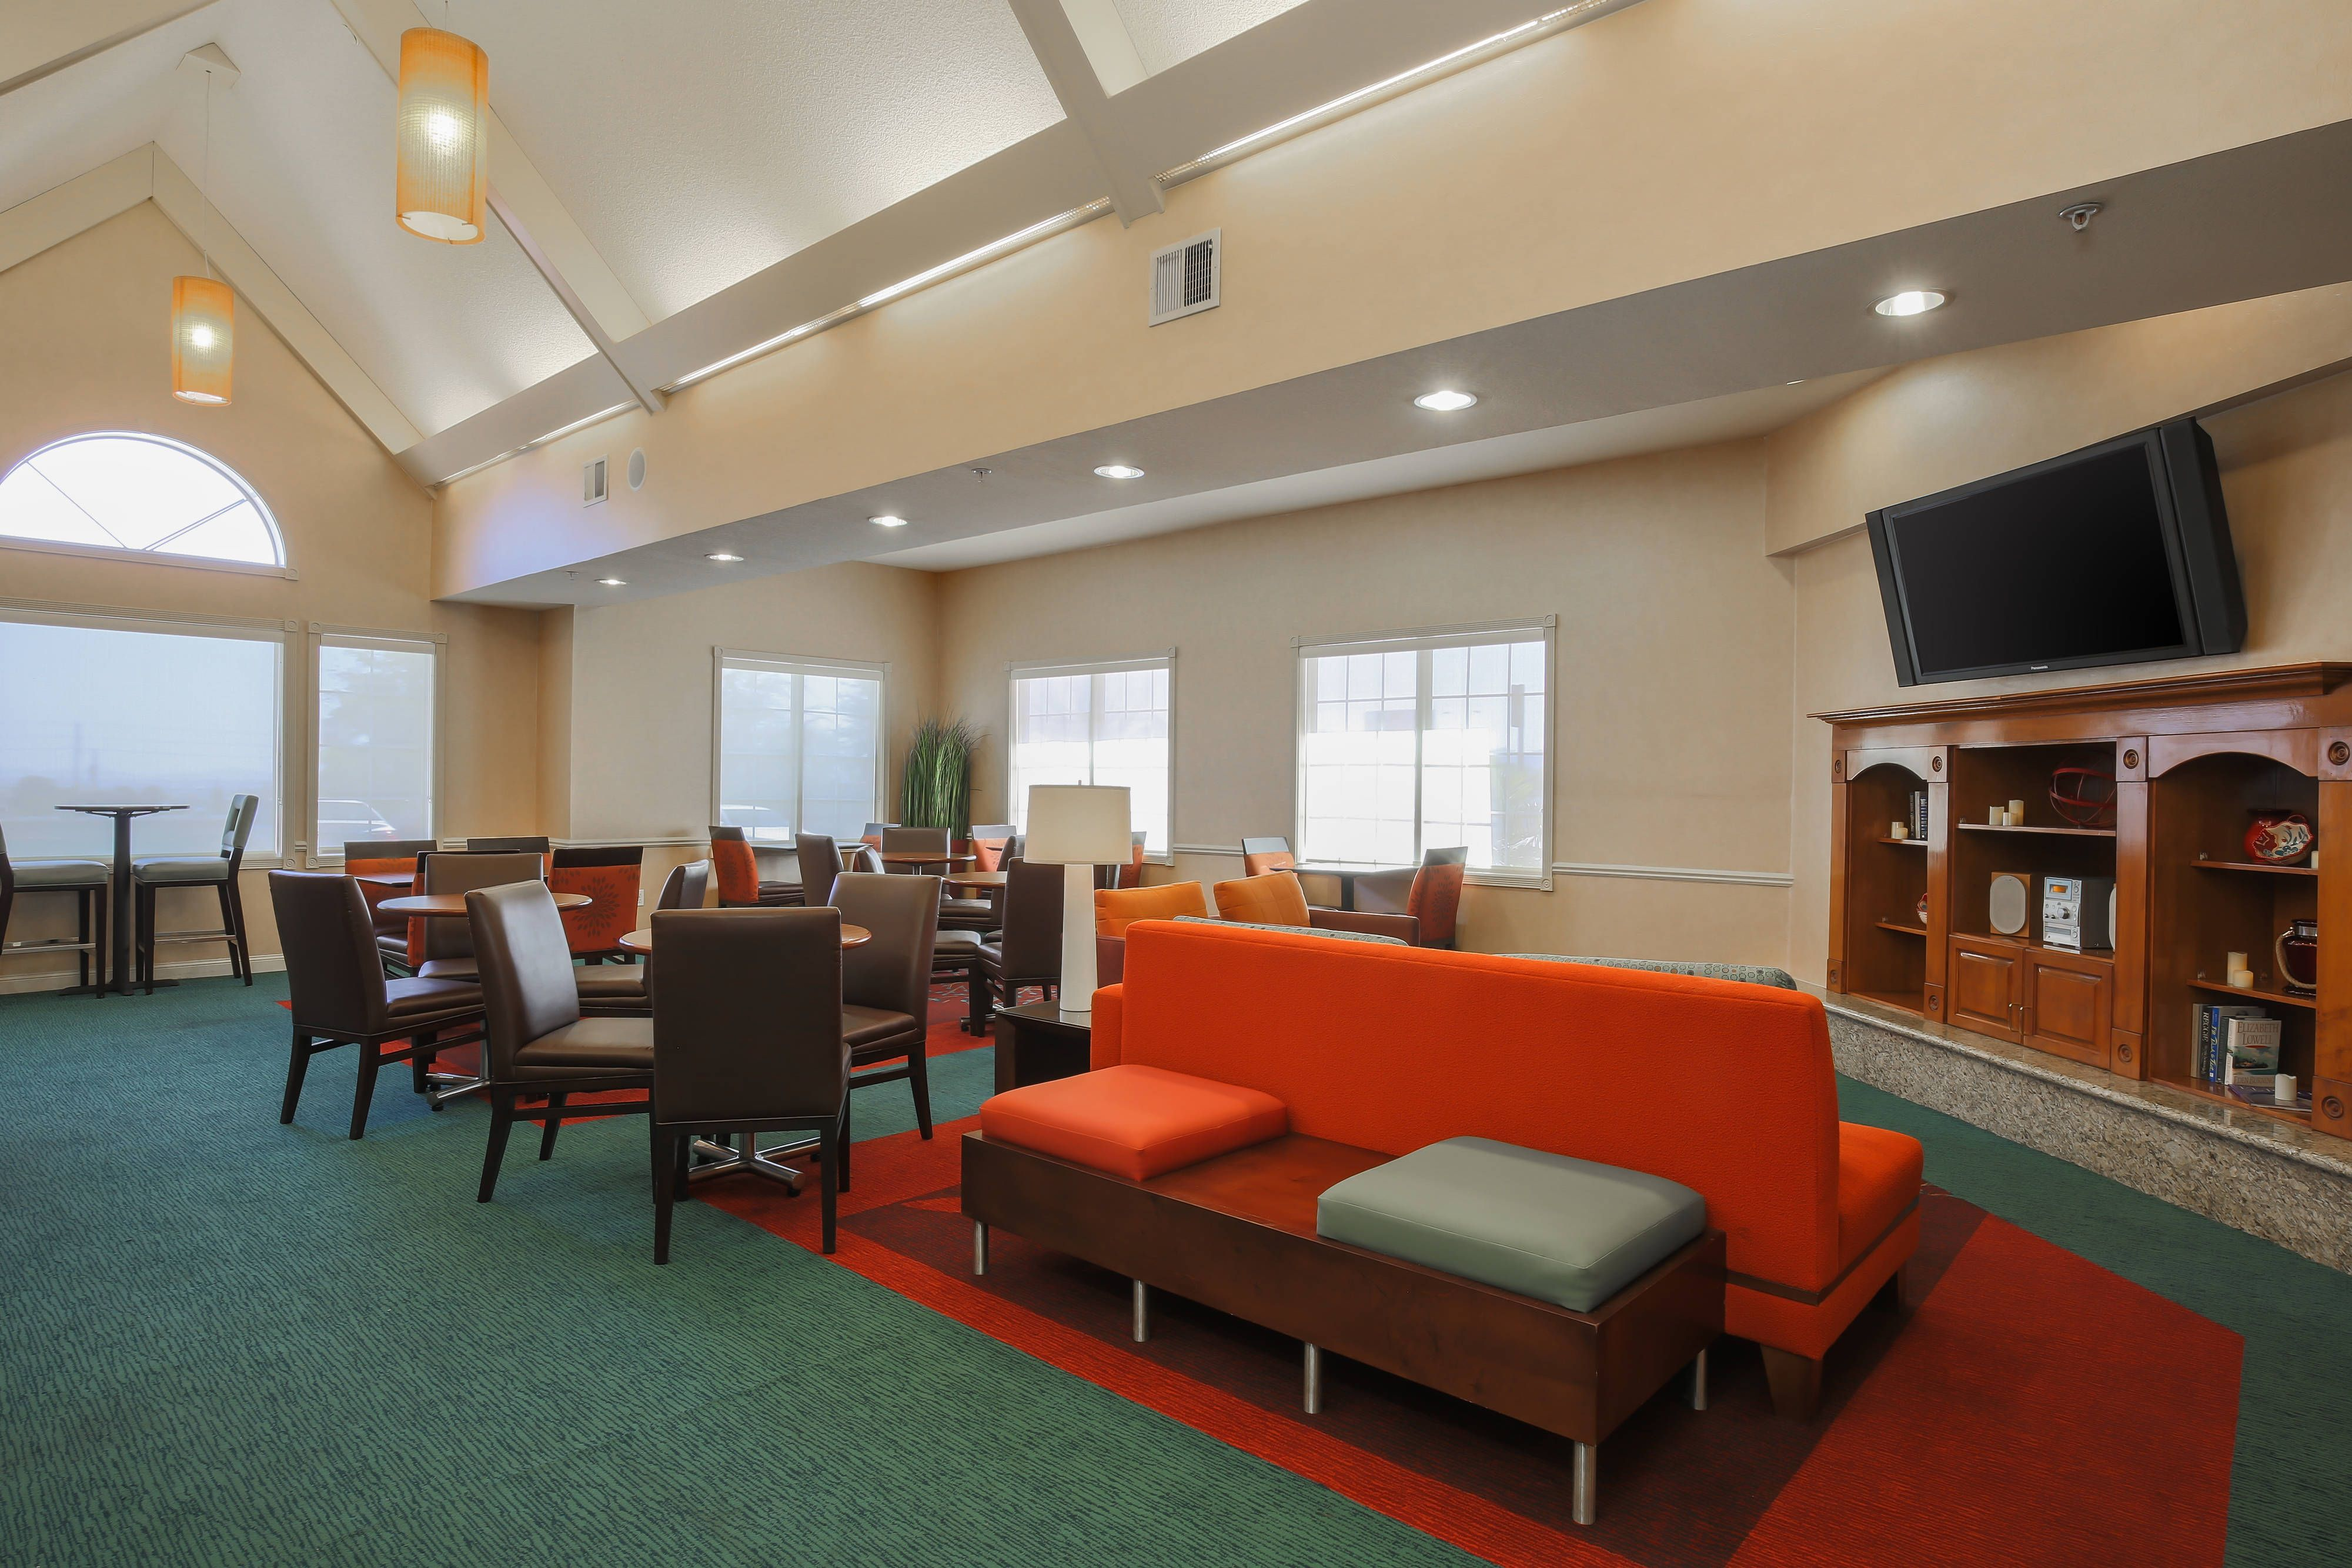 Incredible Residence Inn El Paso Lobby Hotels Relax Comfort Download Free Architecture Designs Ponolprimenicaraguapropertycom